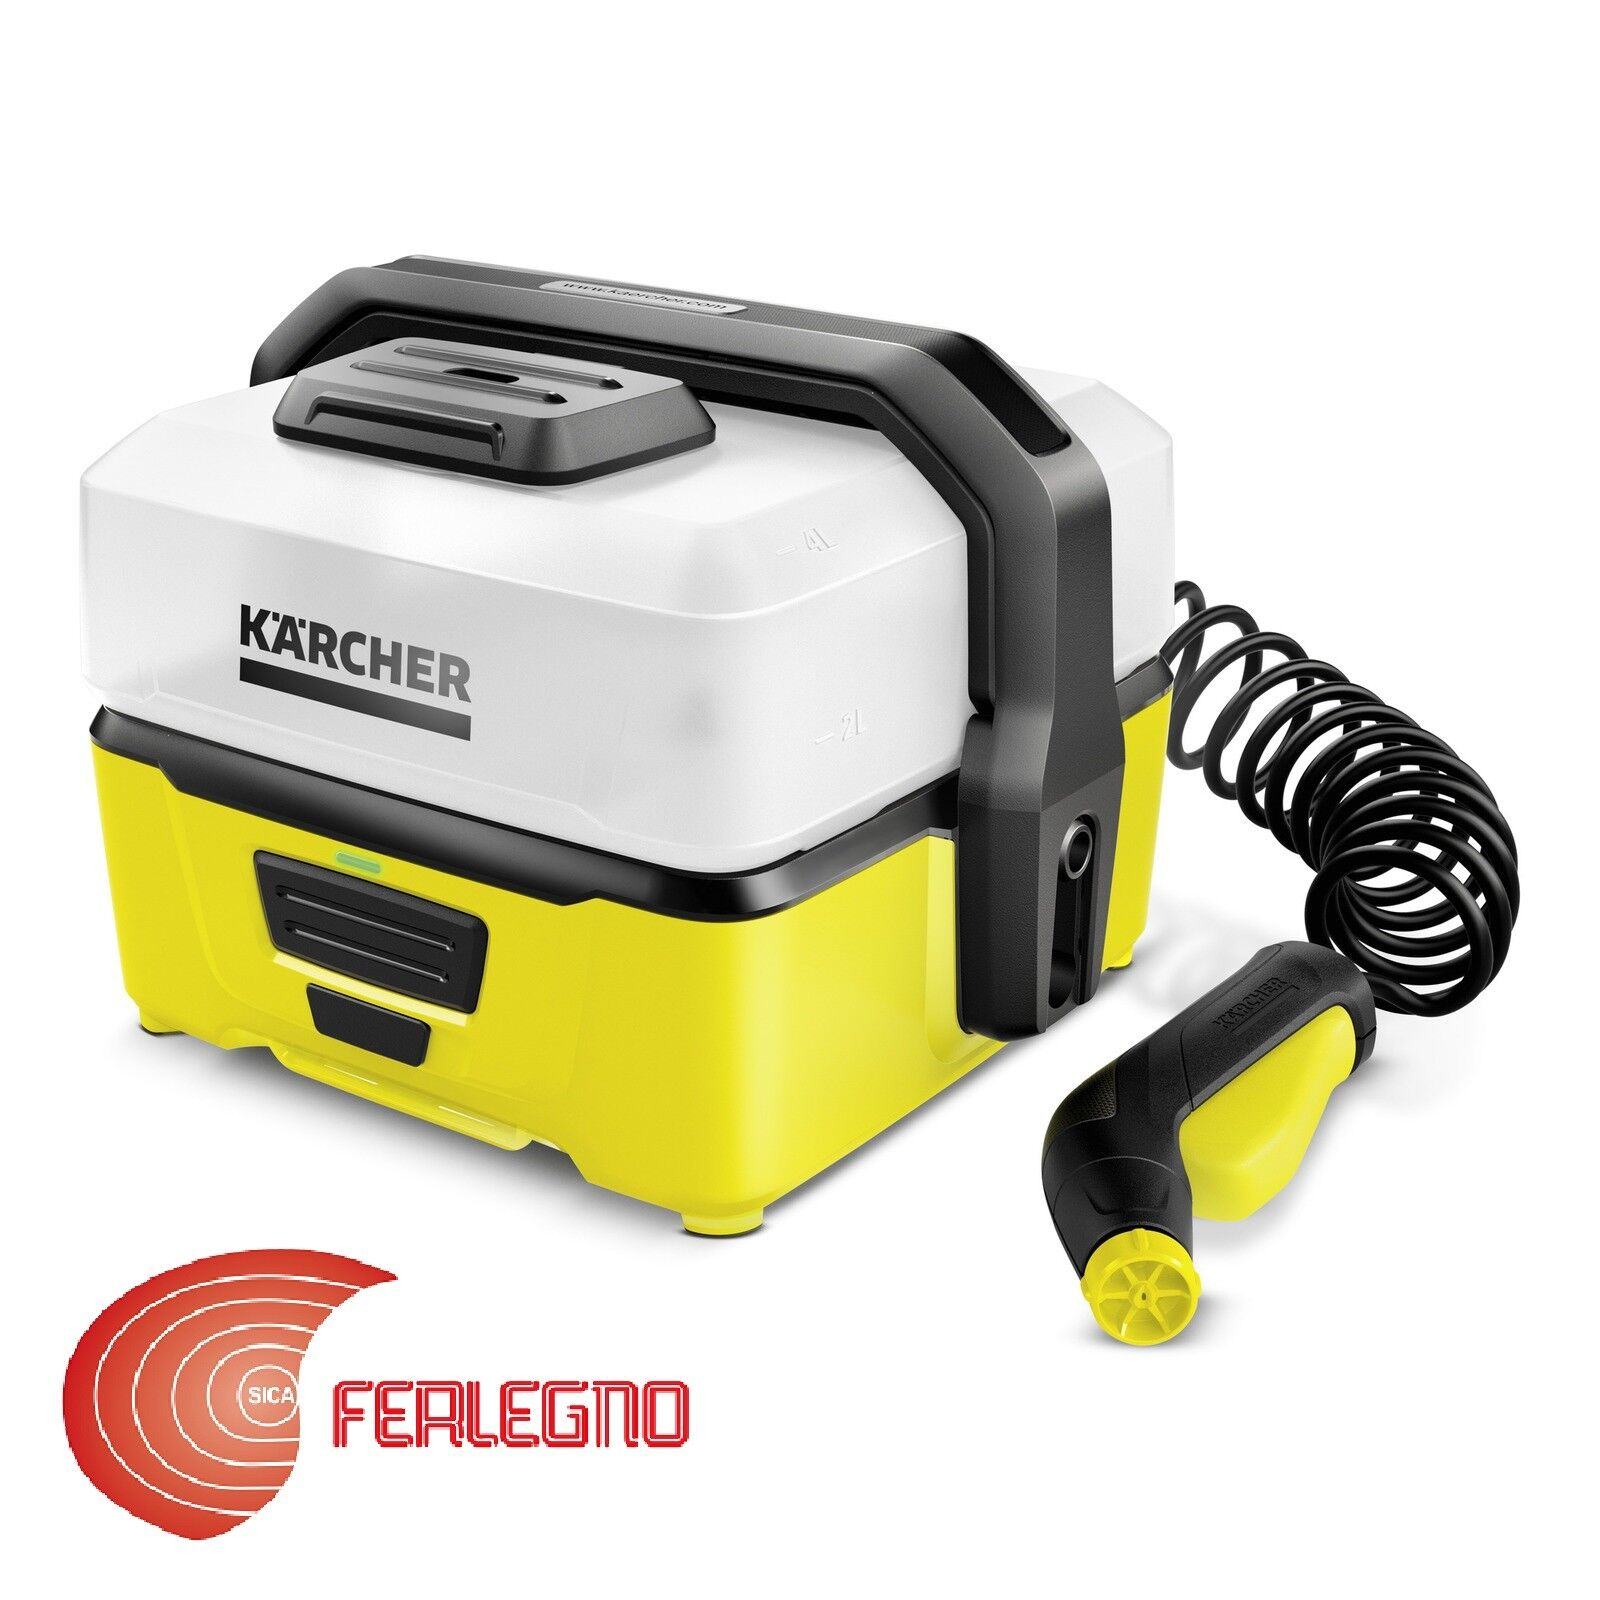 IDROPULITRICE PORTATILE A BATTERIA NO ACQUA MOBILE OUTDOOR CLEANER OC3 KARCHER